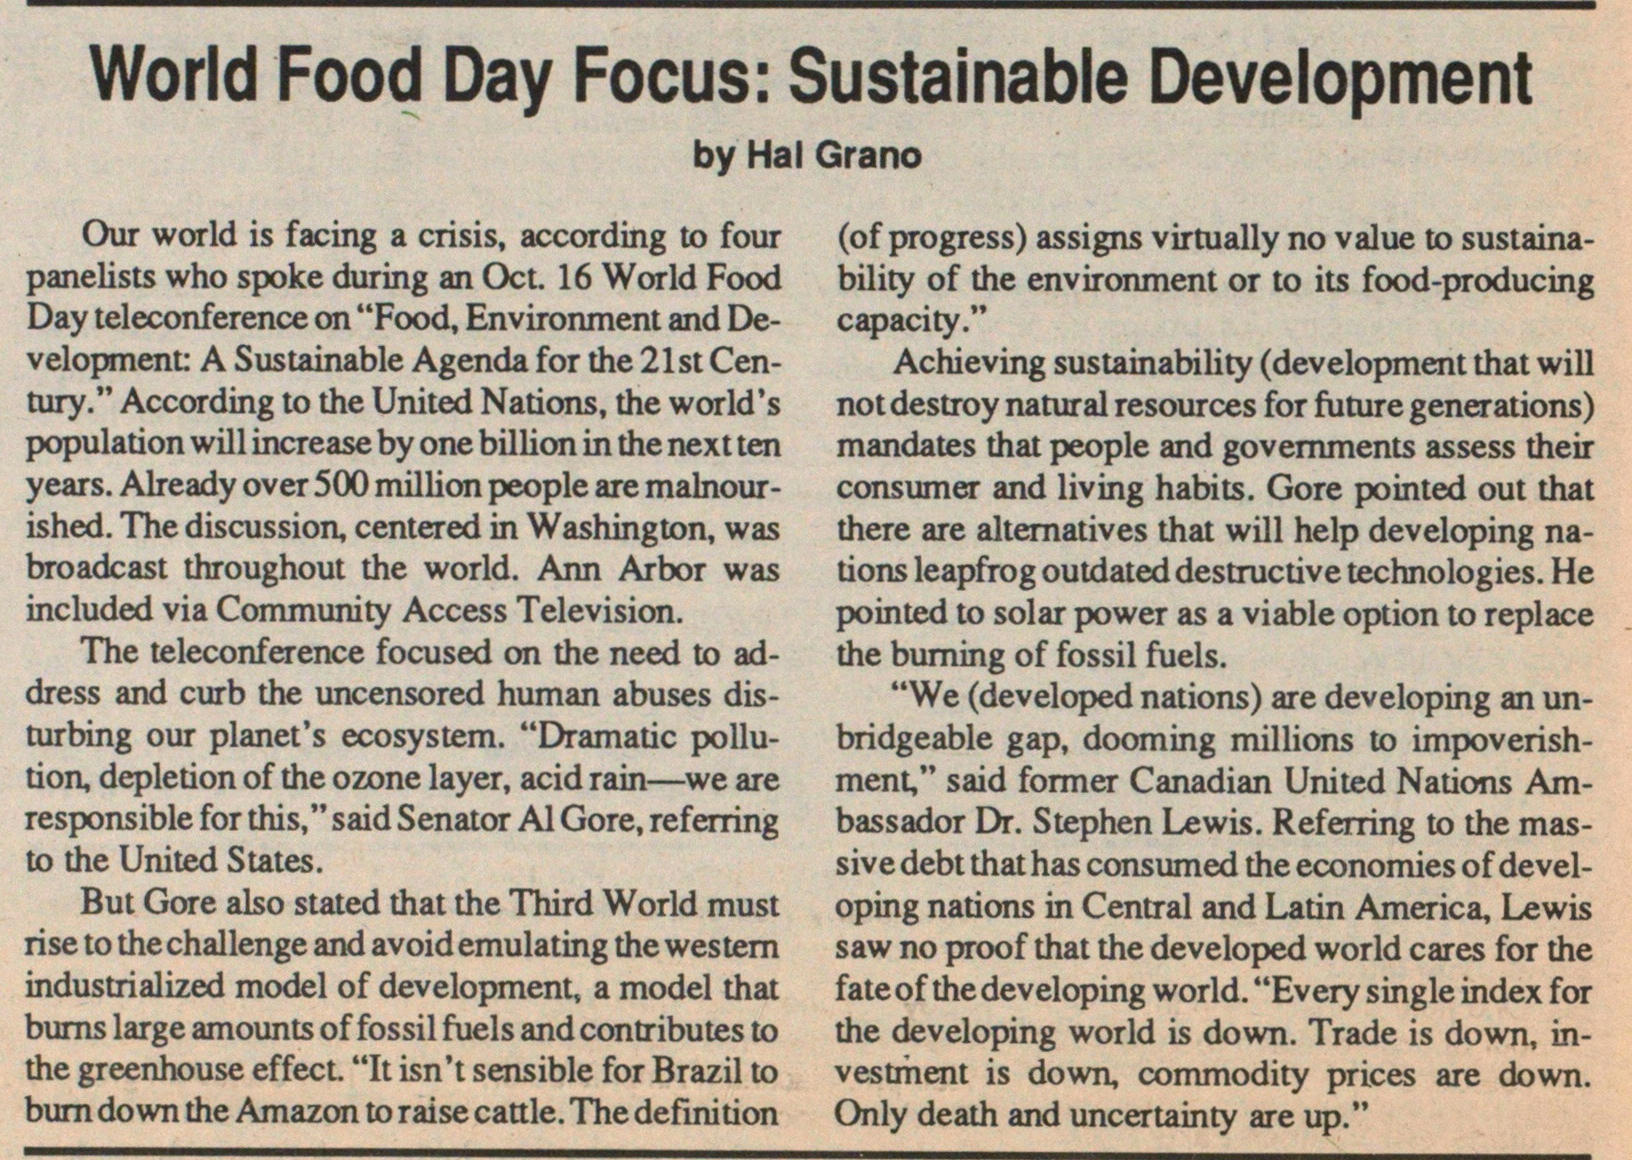 World Food Day Focus: Sustainable Development image